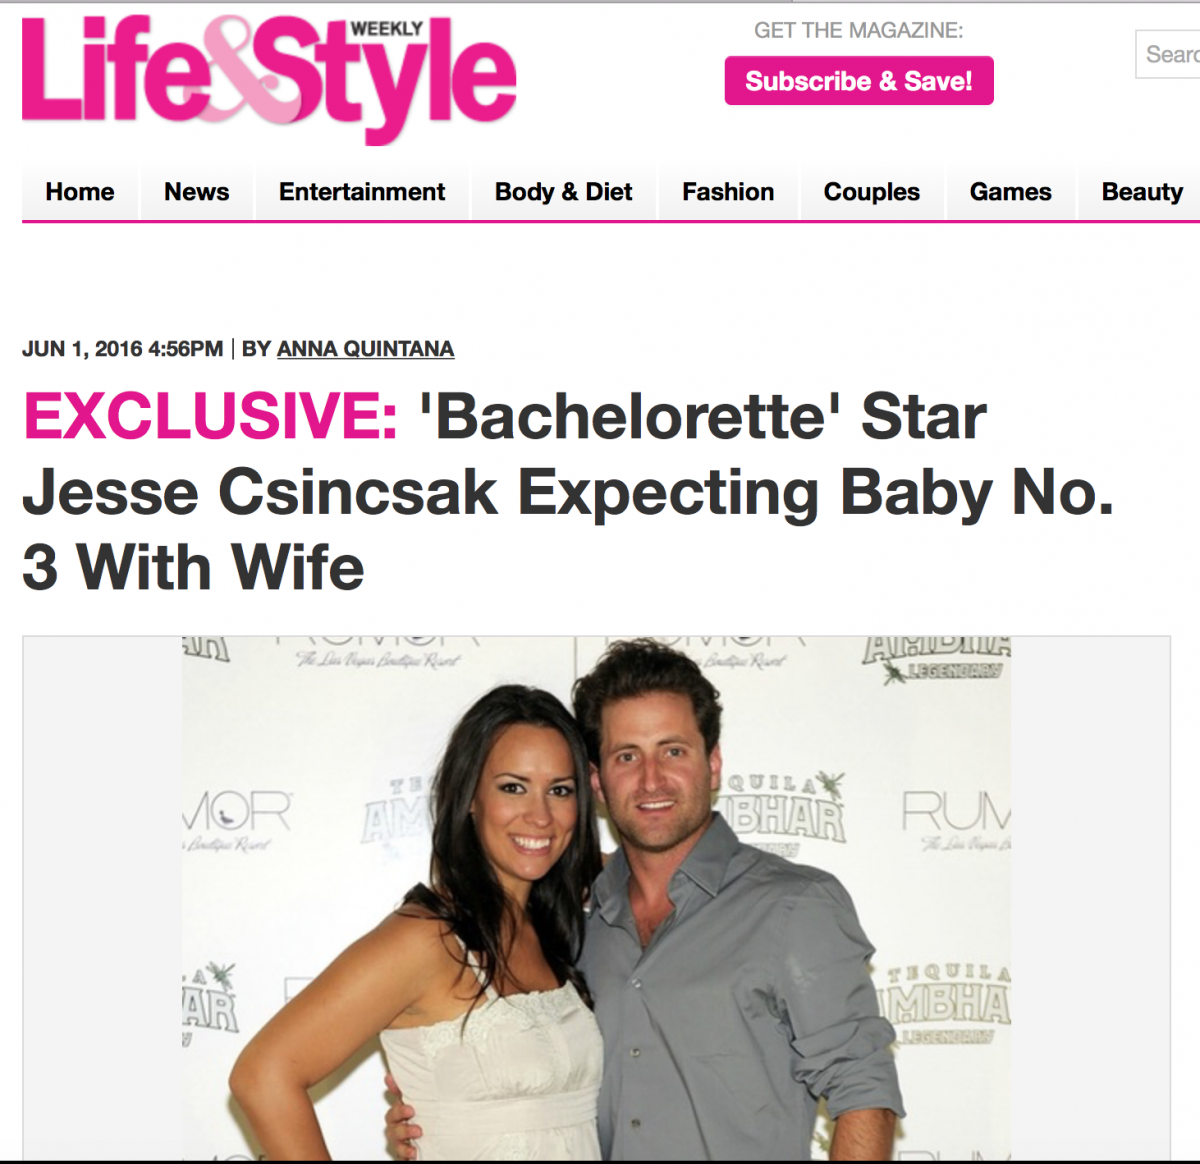 Life & Style Exclusive:'Bachelorette' Star Jesse Csincsak Expecting Baby No. 3 With Wife Ann Csincsak